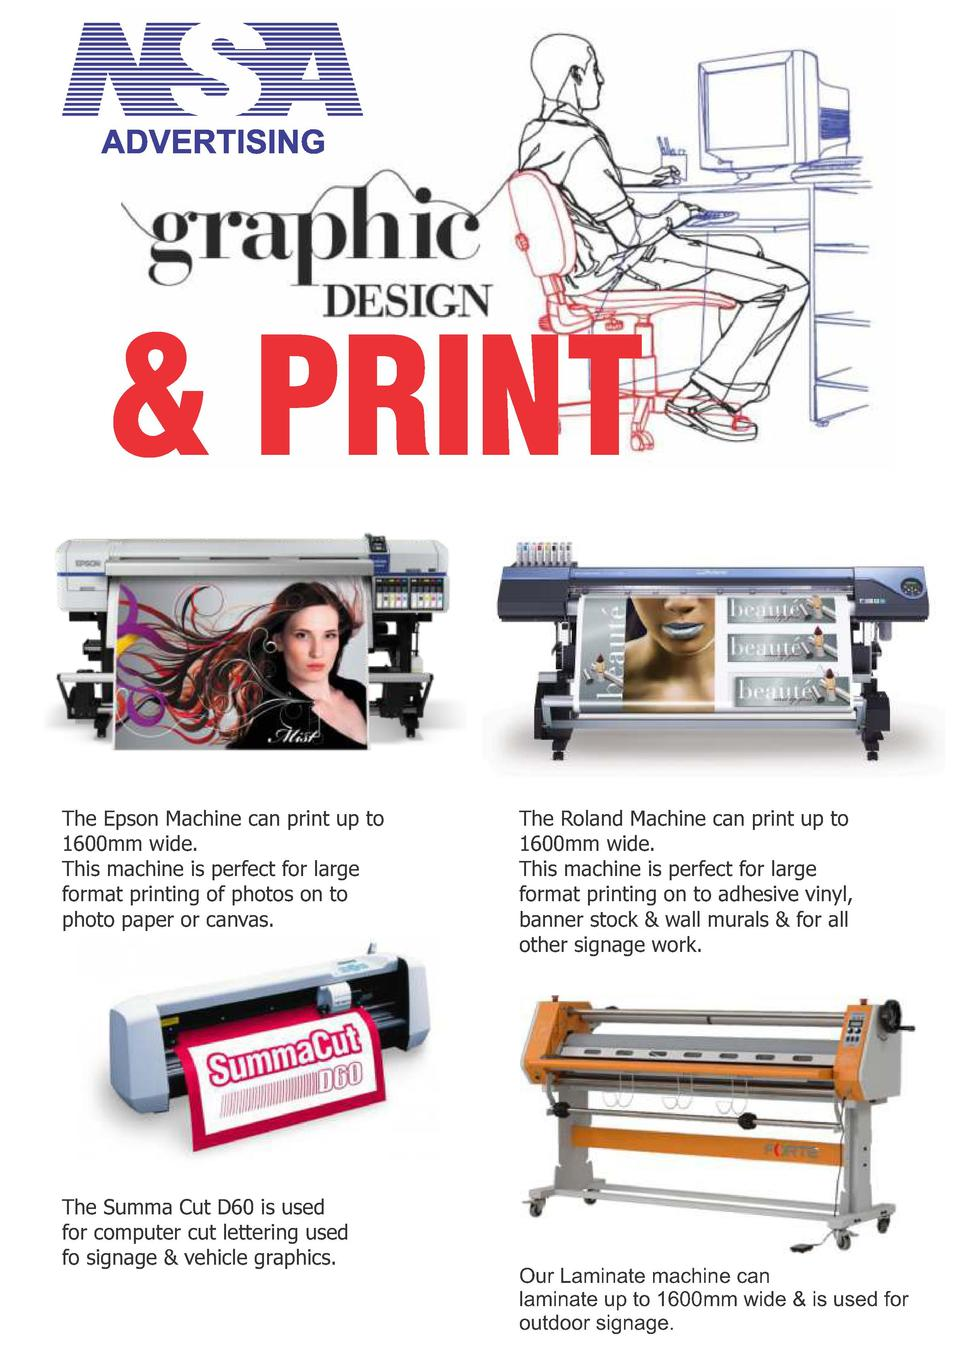 PRINT The Epson Machine can print up to 1600mm wide. This machine is perfect for large format printing of photos on to p...